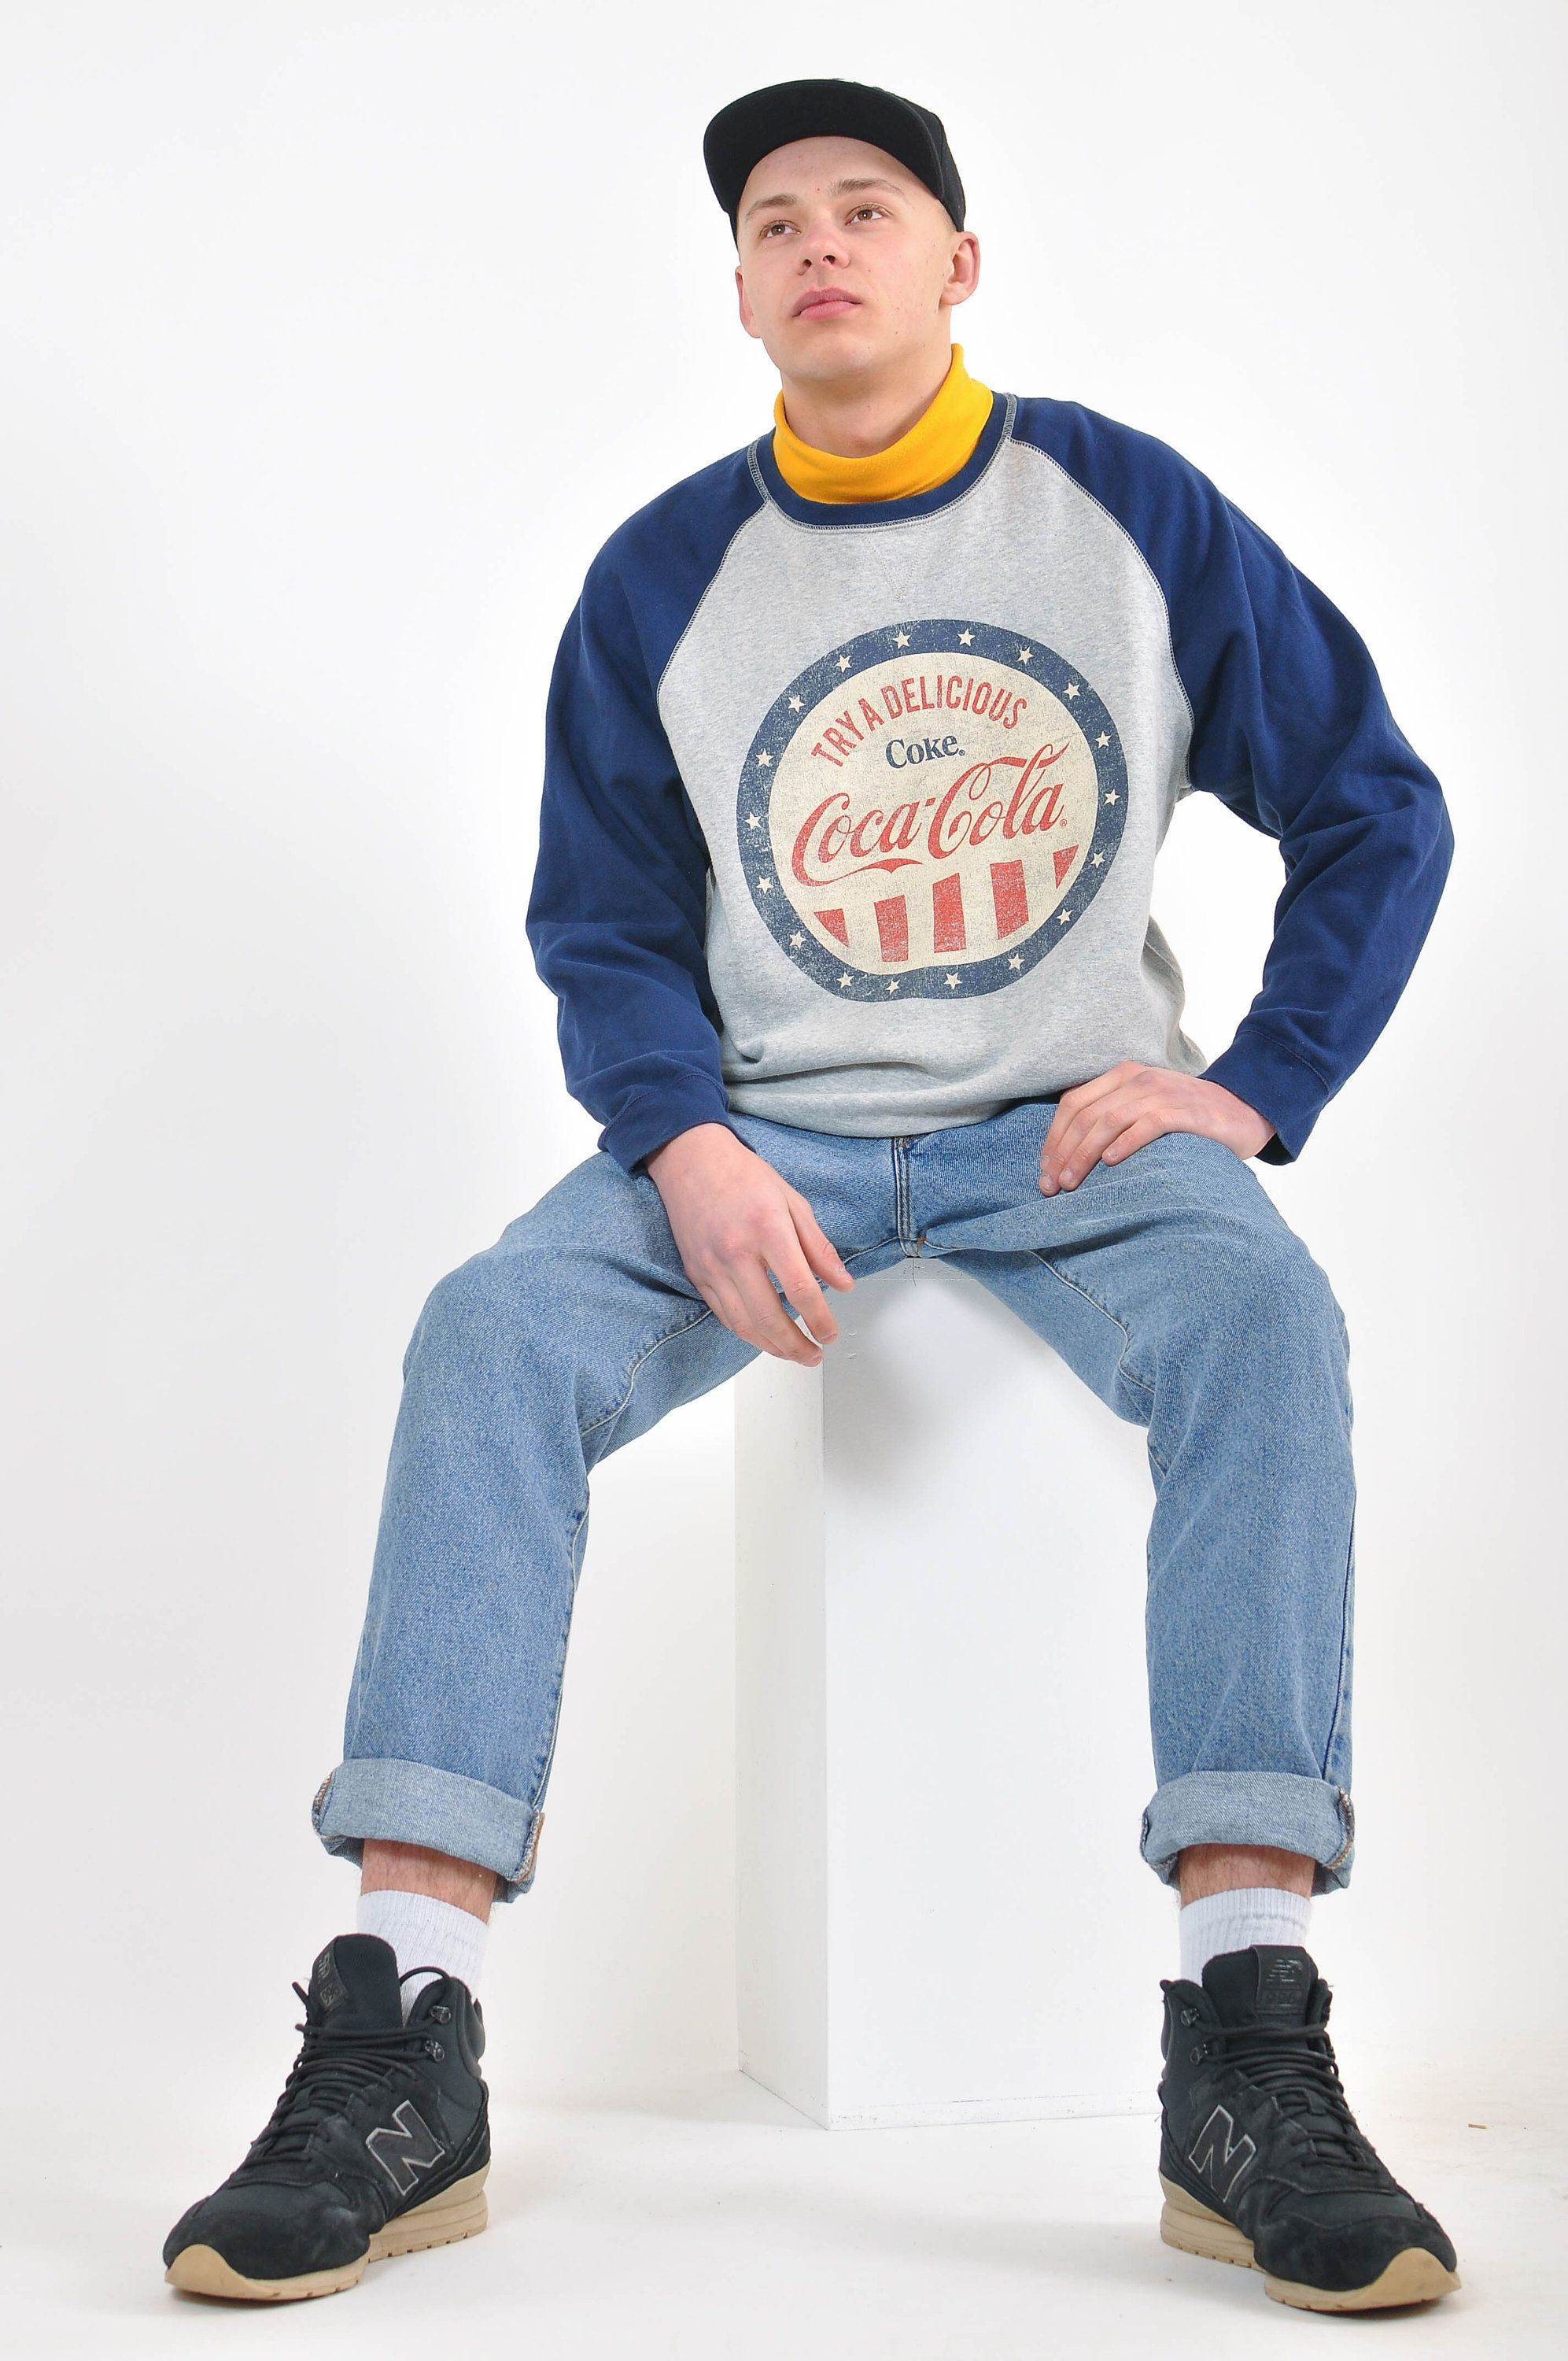 Excited To Share The Latest Addition To My Shop Vintage 90s Cocacola Sweatshirt Clothing Men Hoodie Gray Blue Vintage Outfits Clothes Mens Sweatshirts [ 3000 x 1993 Pixel ]